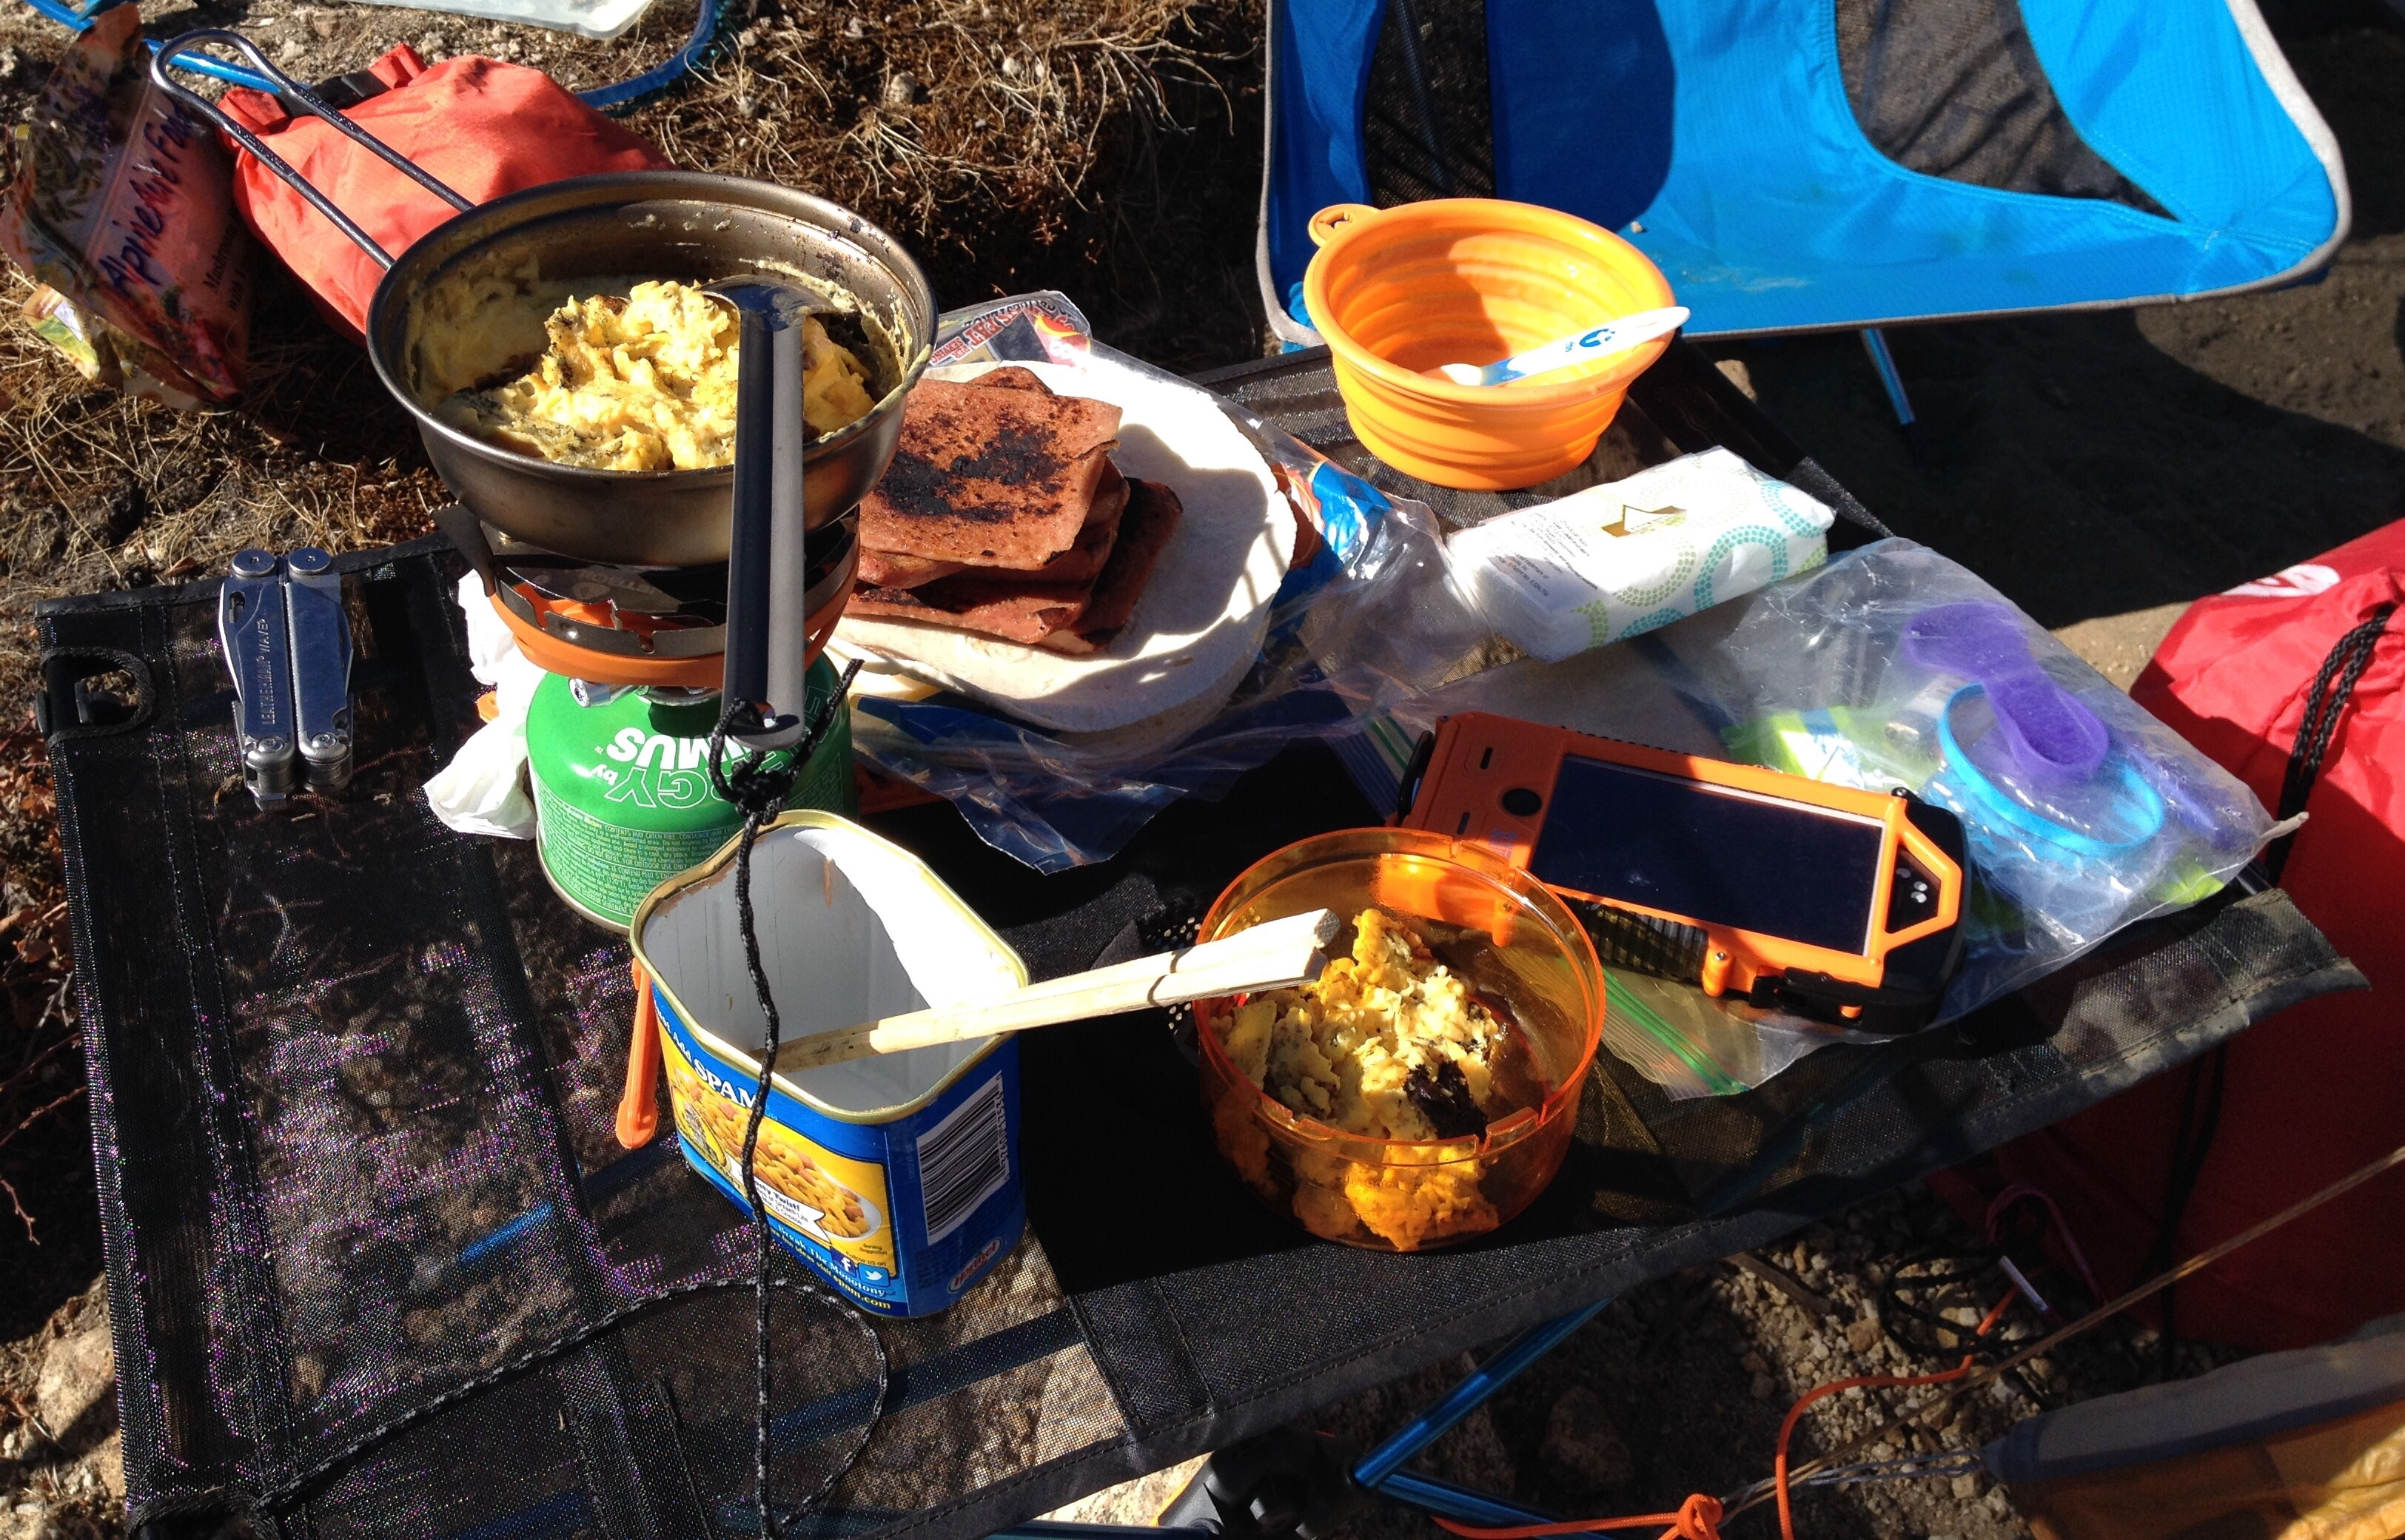 Helinox Table One Review Camping Stoves And Other Gear